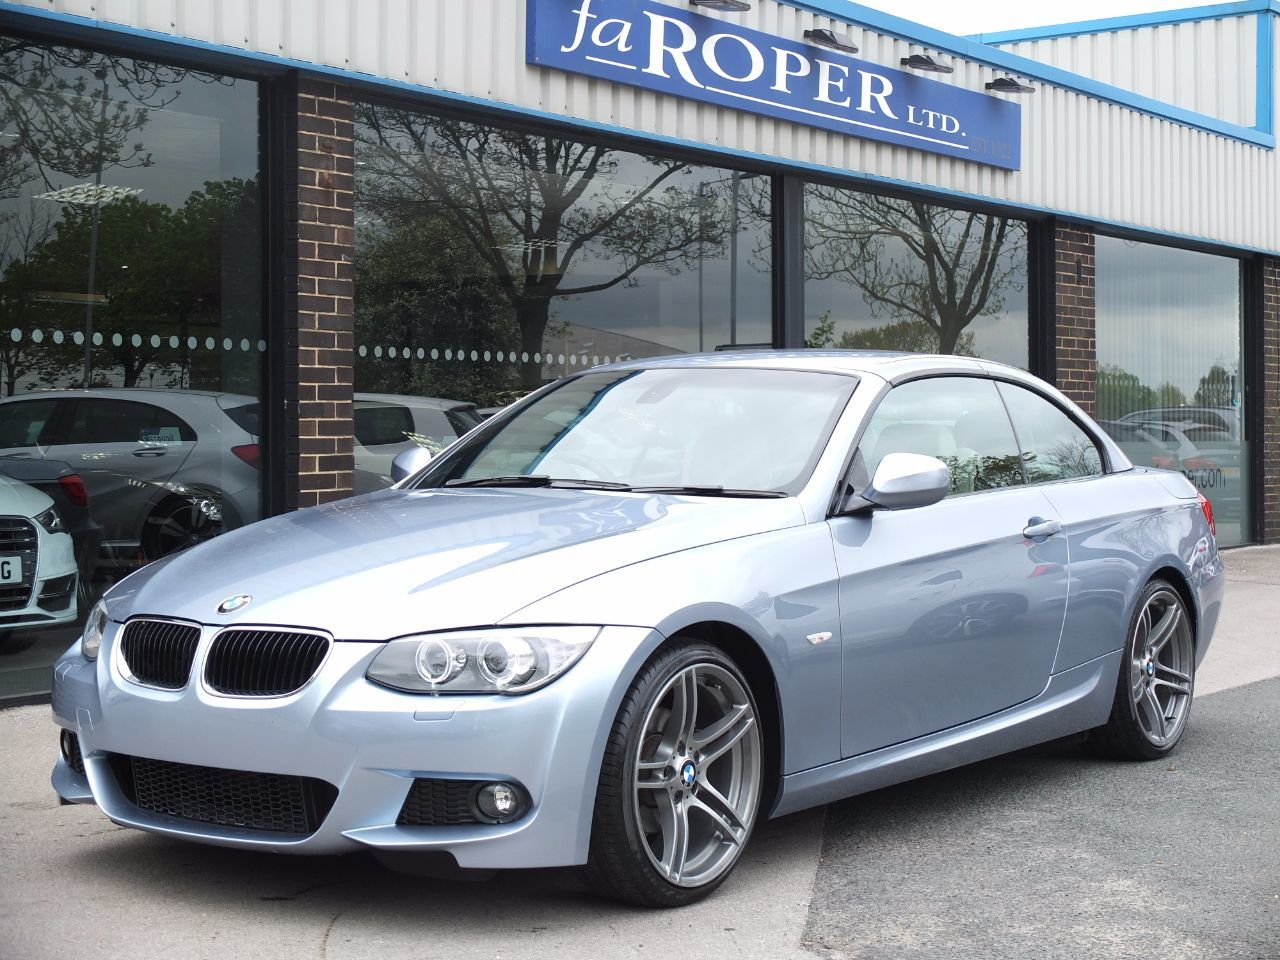 BMW 3 Series 2.0 320i M Sport Convertible Auto (1428 miles) Convertible Petrol Bluewater Metallic